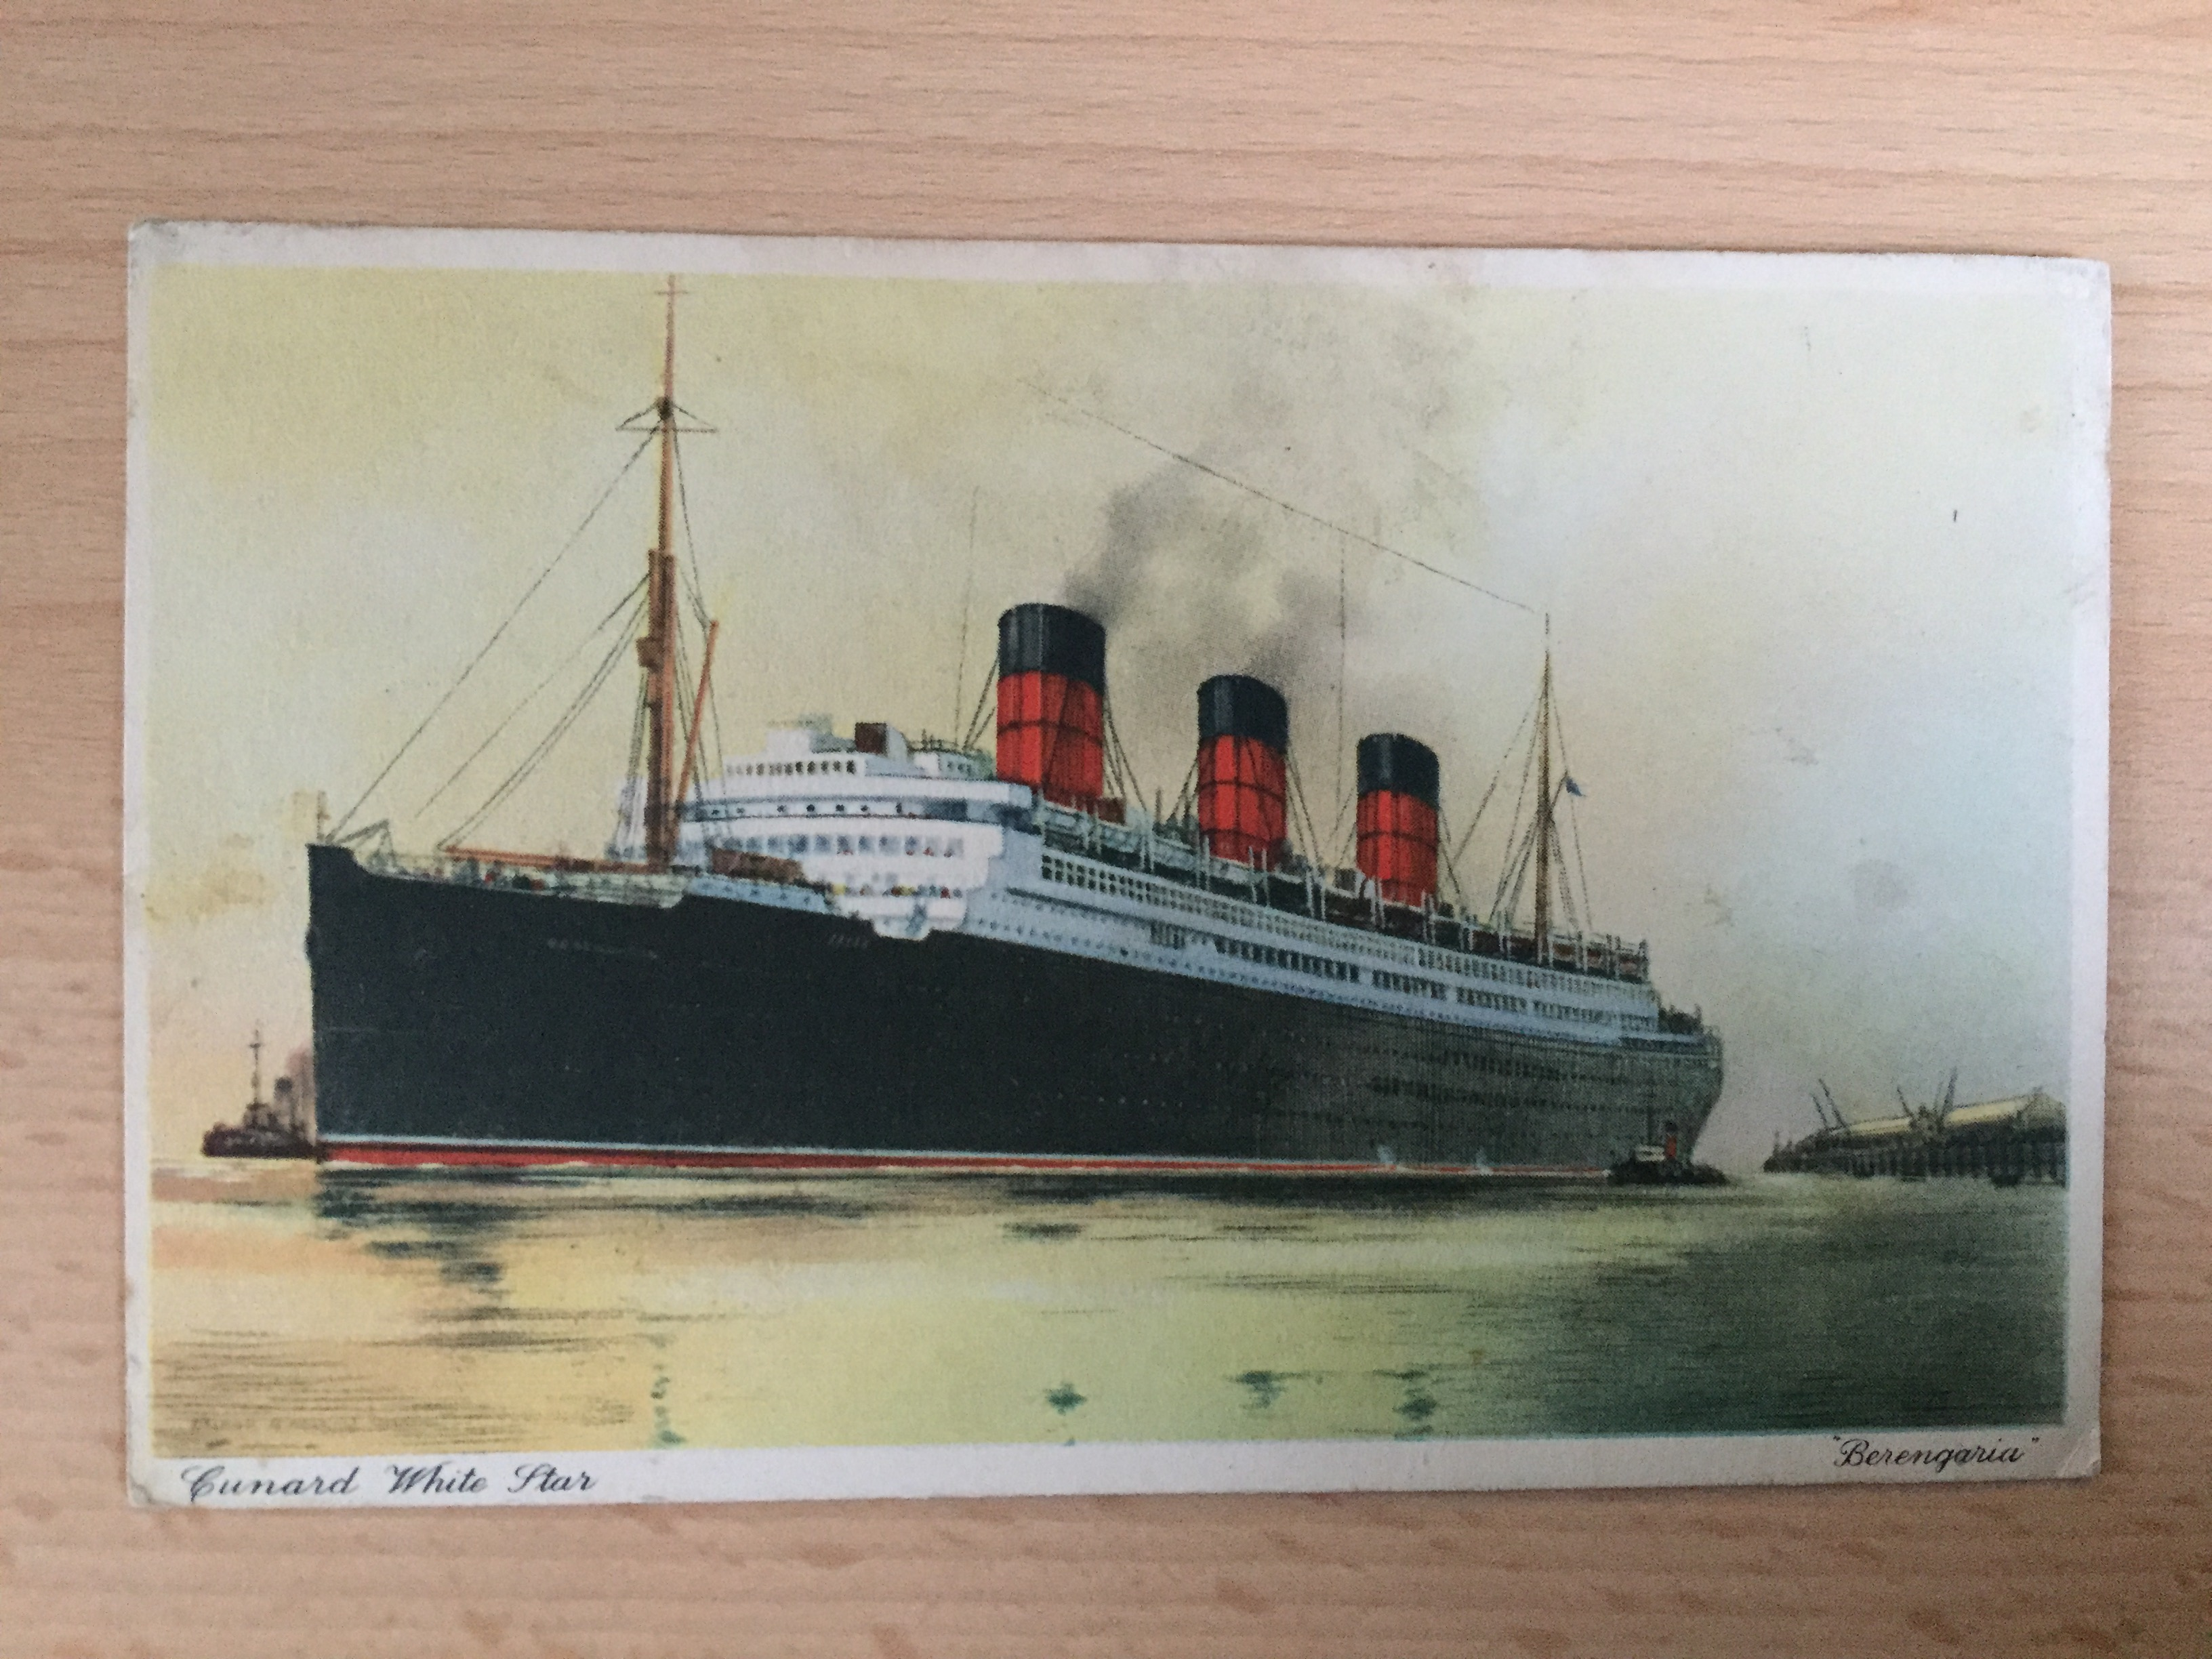 VERY EARLY COLOUR POSTCARD FROM THE VESSEL THE BERENGARIA OF THE CUNARD WHITESTAR LINE